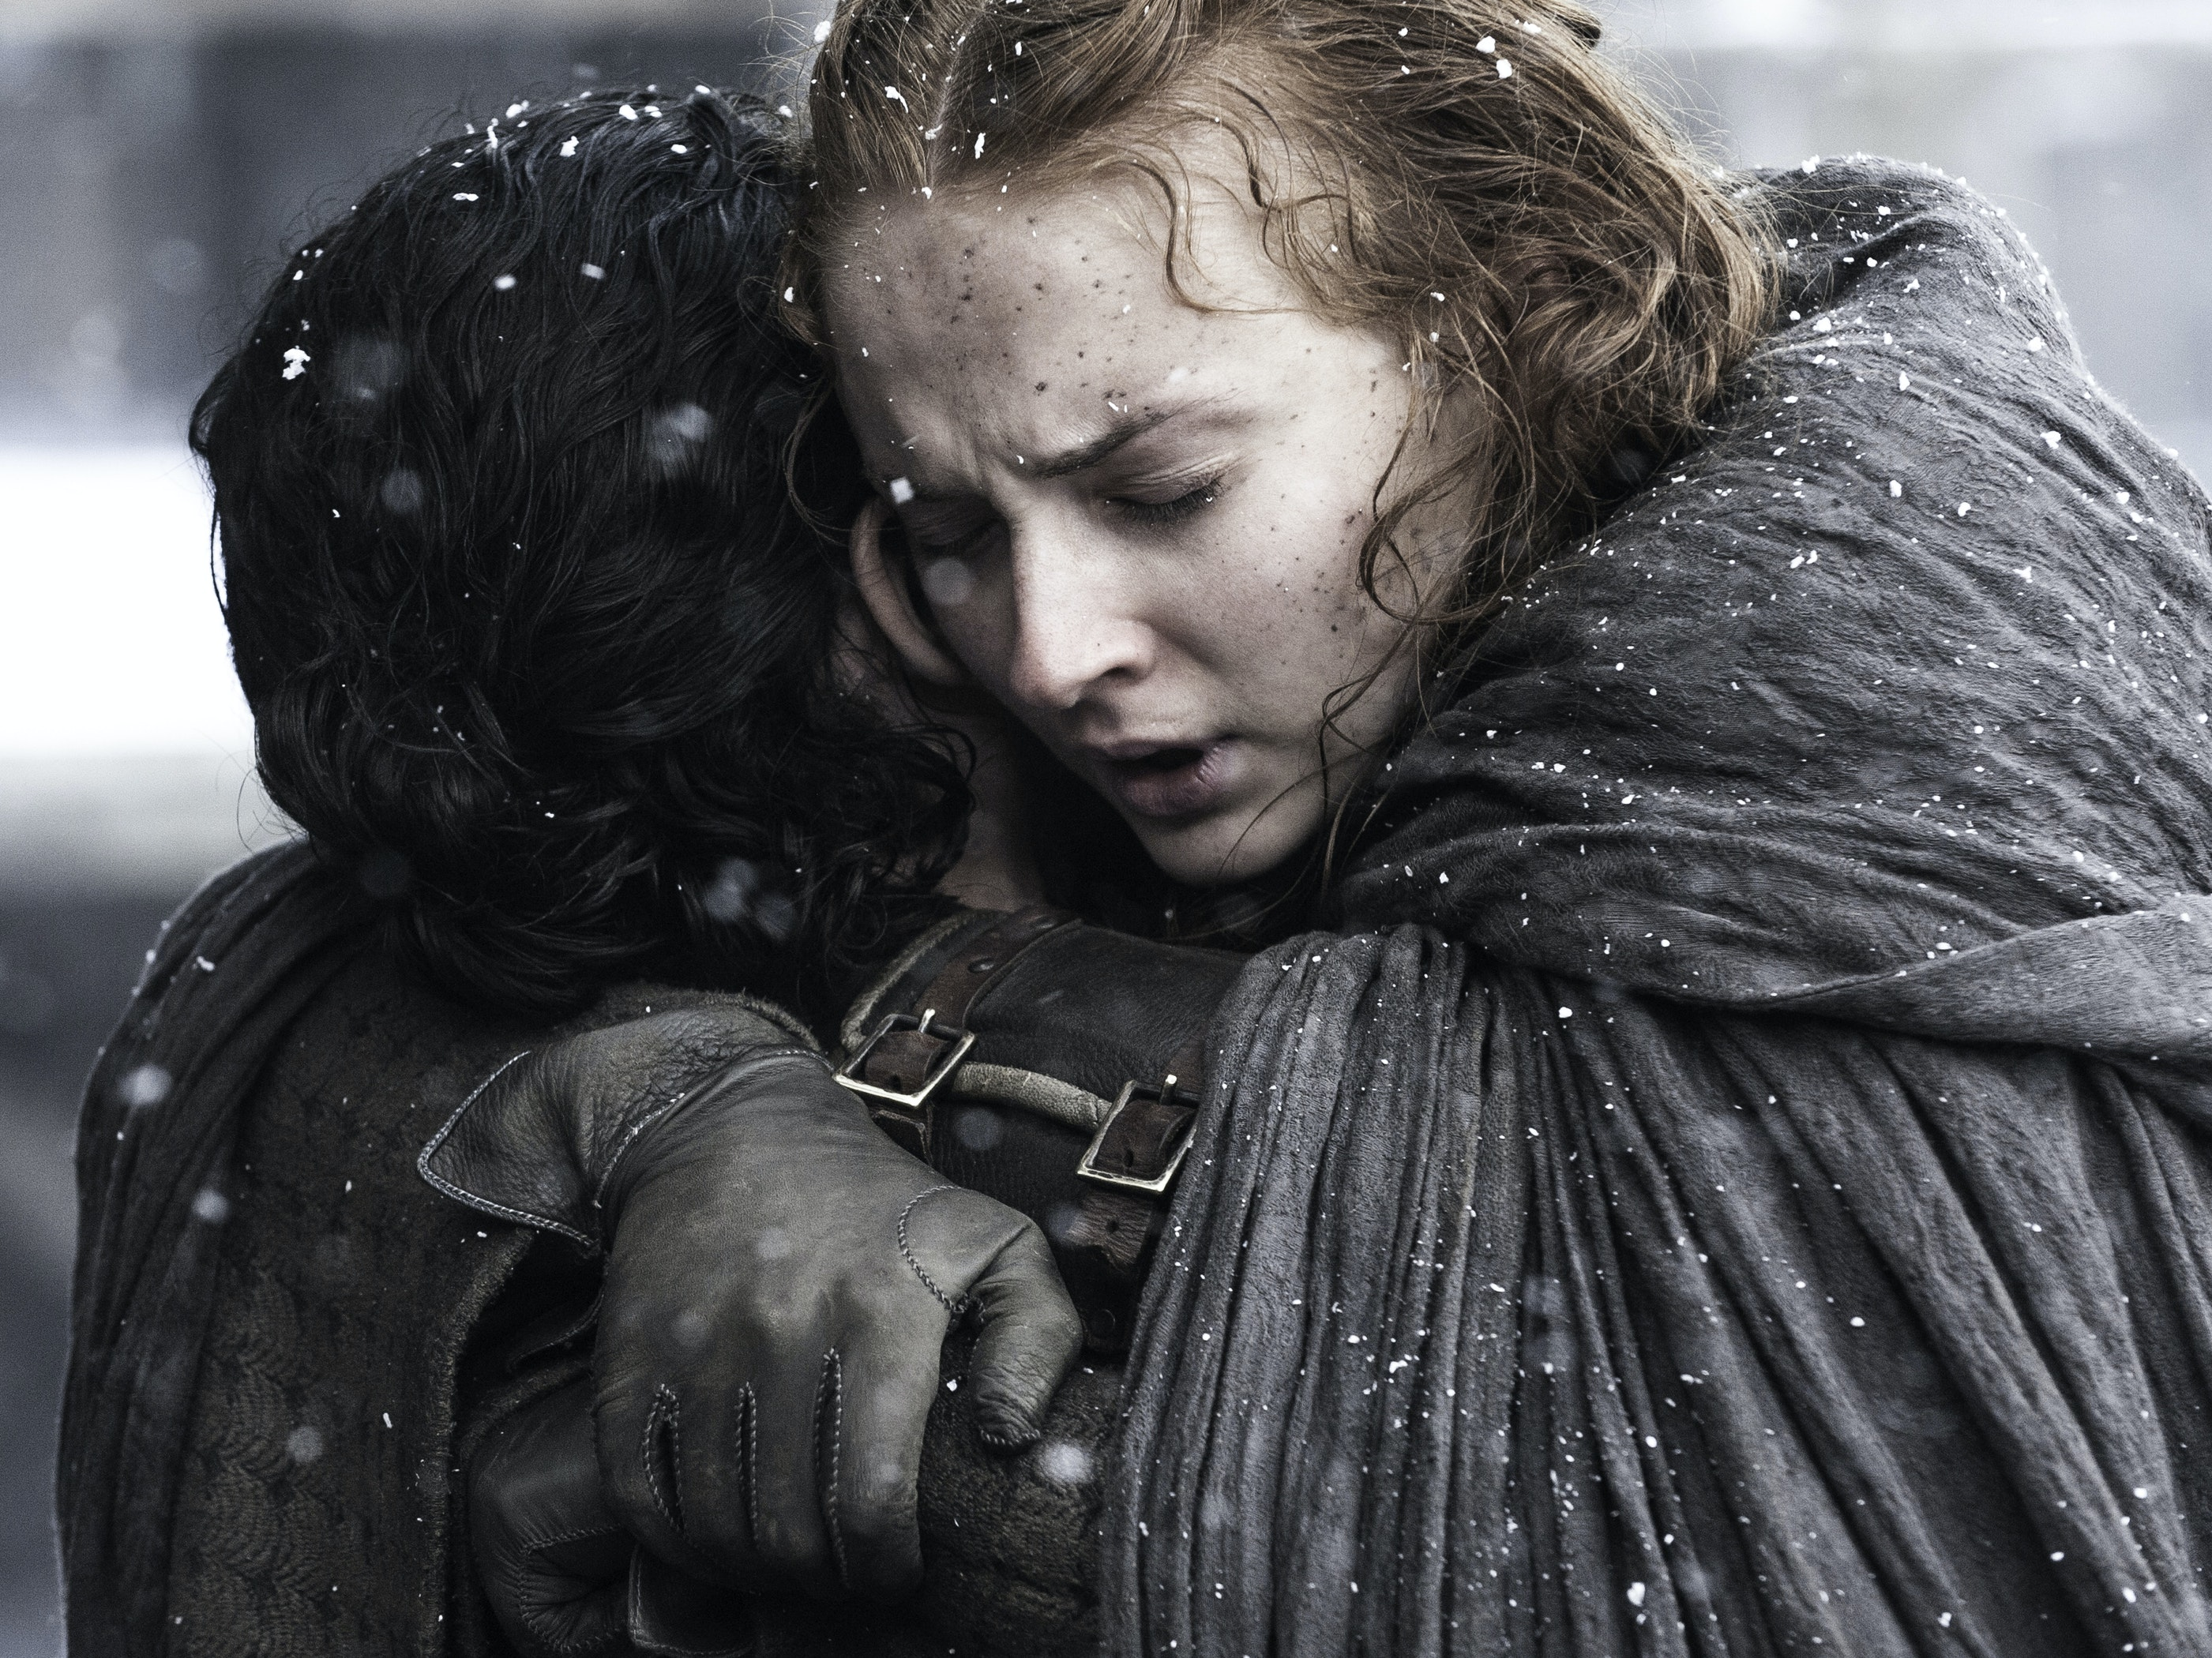 A Stark Family Reunion on 'GoT' Season 7 is Looking Likely